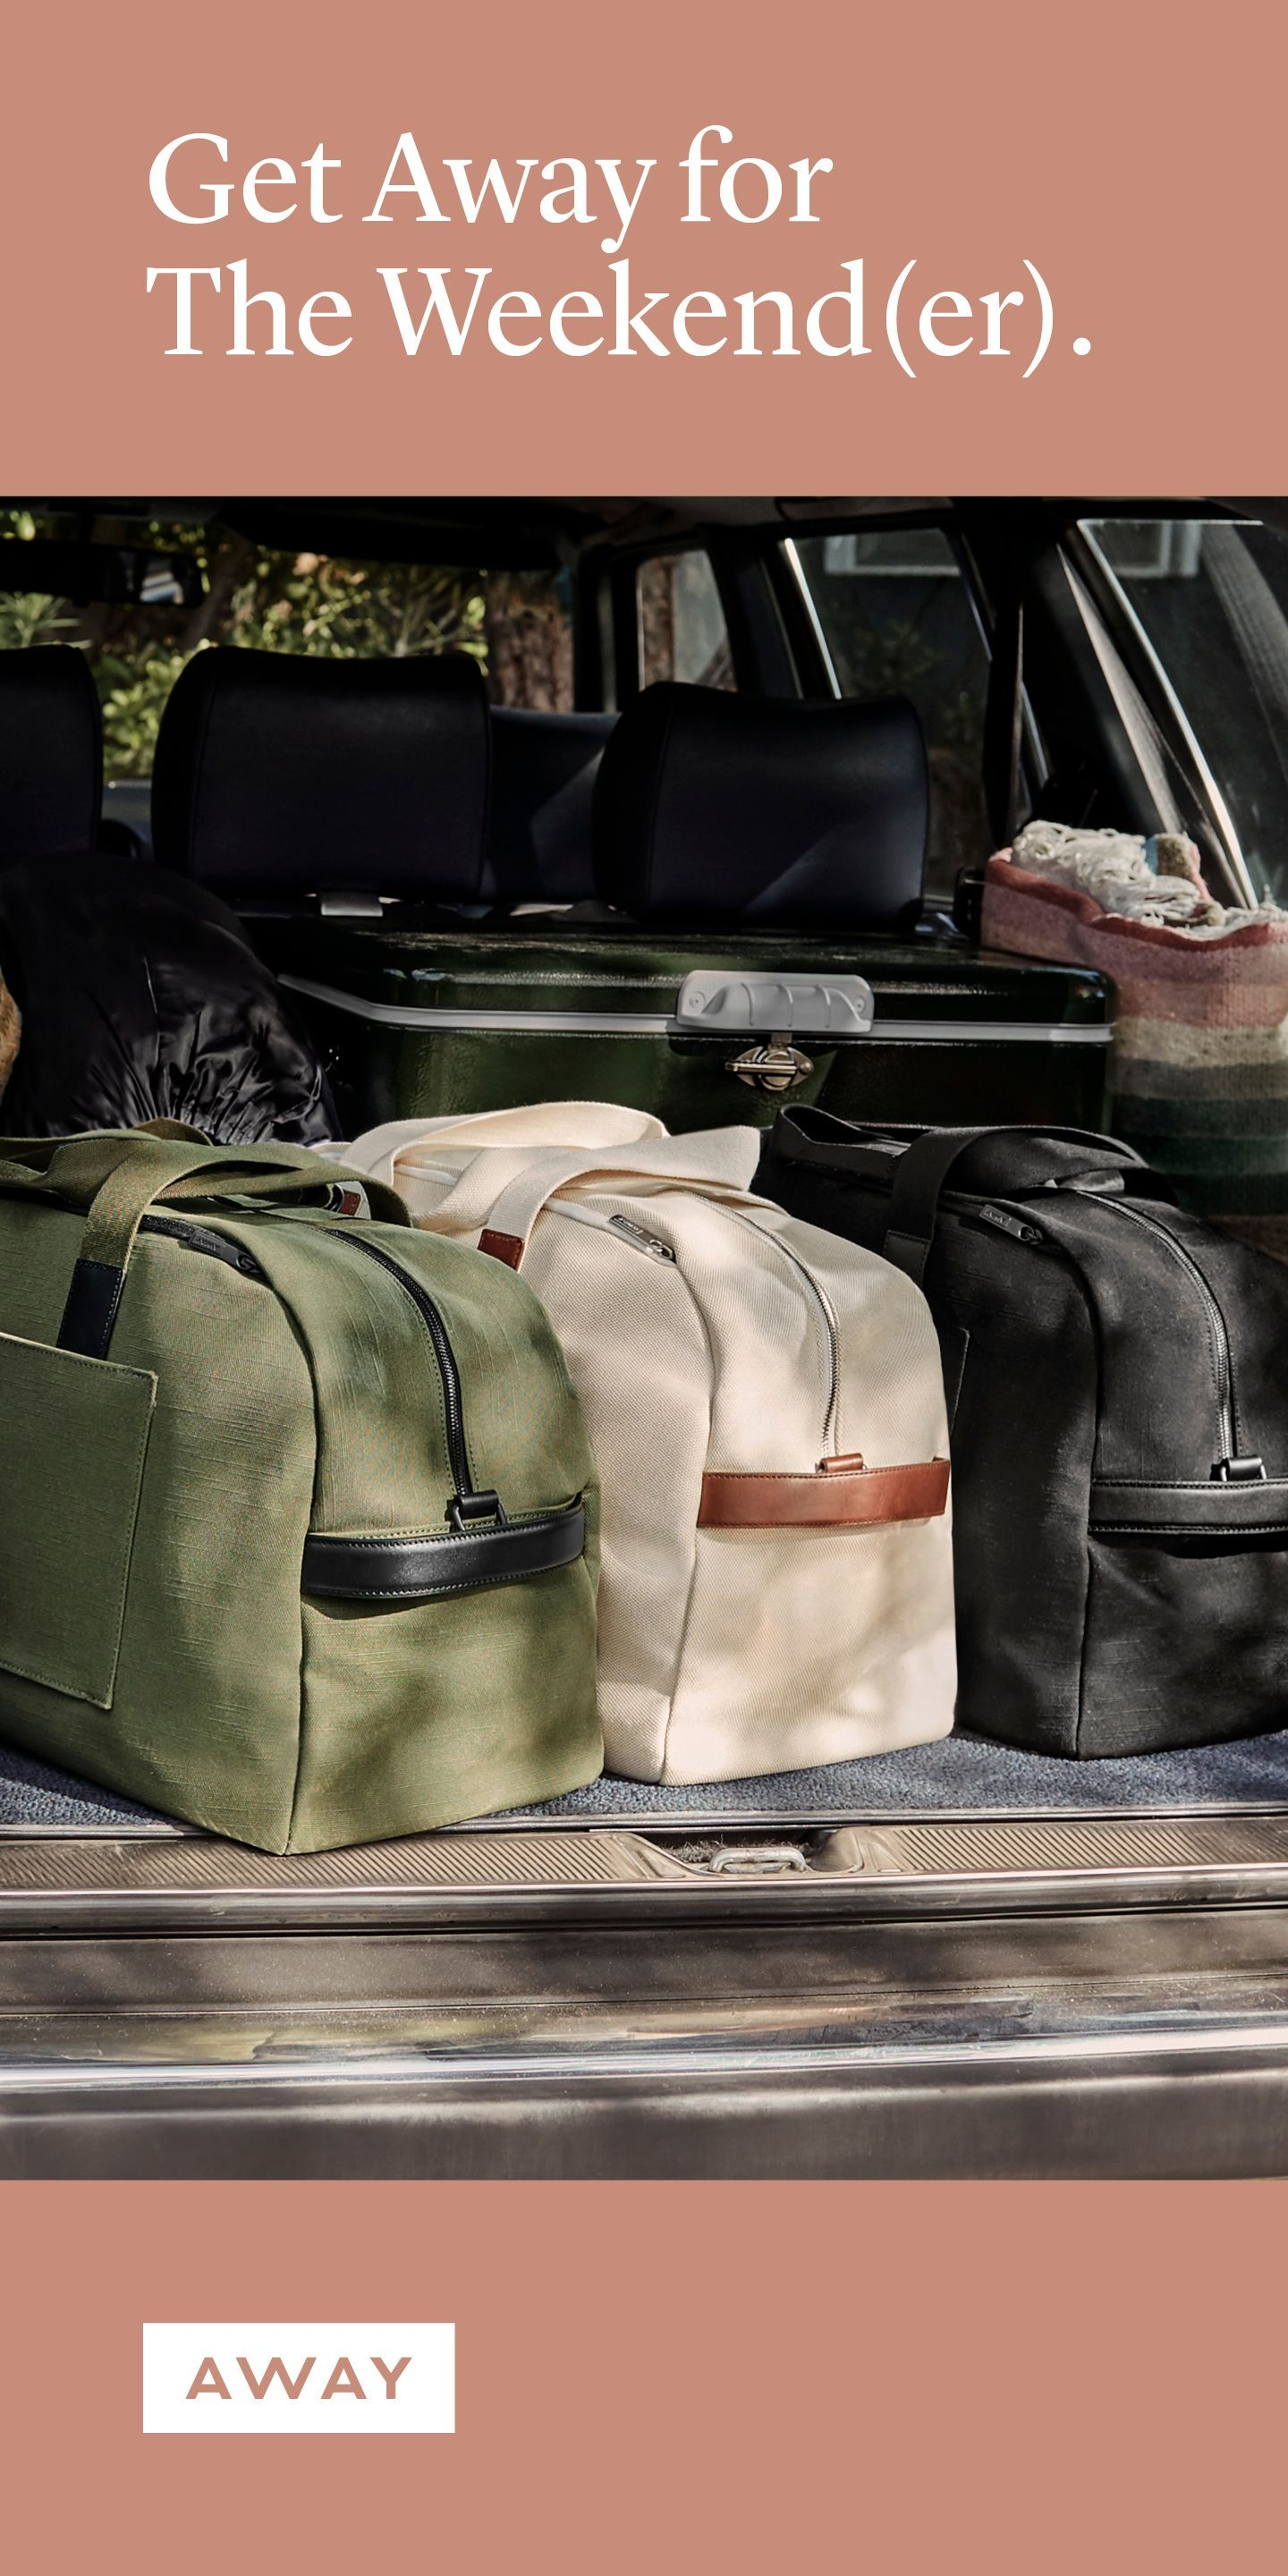 Meet the weekender a modern take on a travel classic